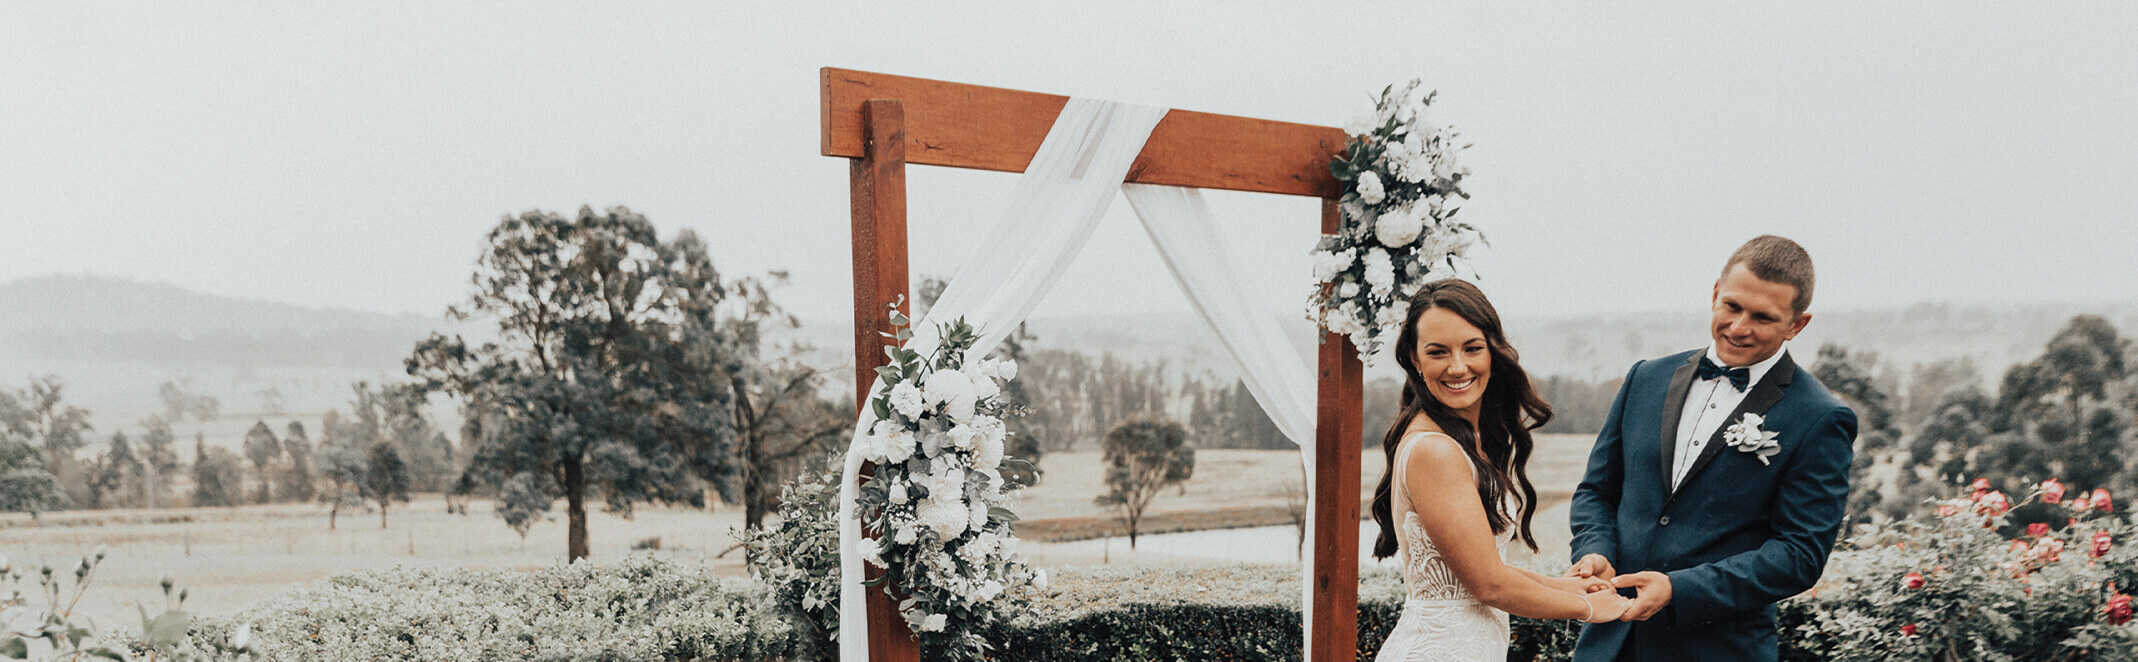 Planning the Perfect Country Wedding in Hunter Valley